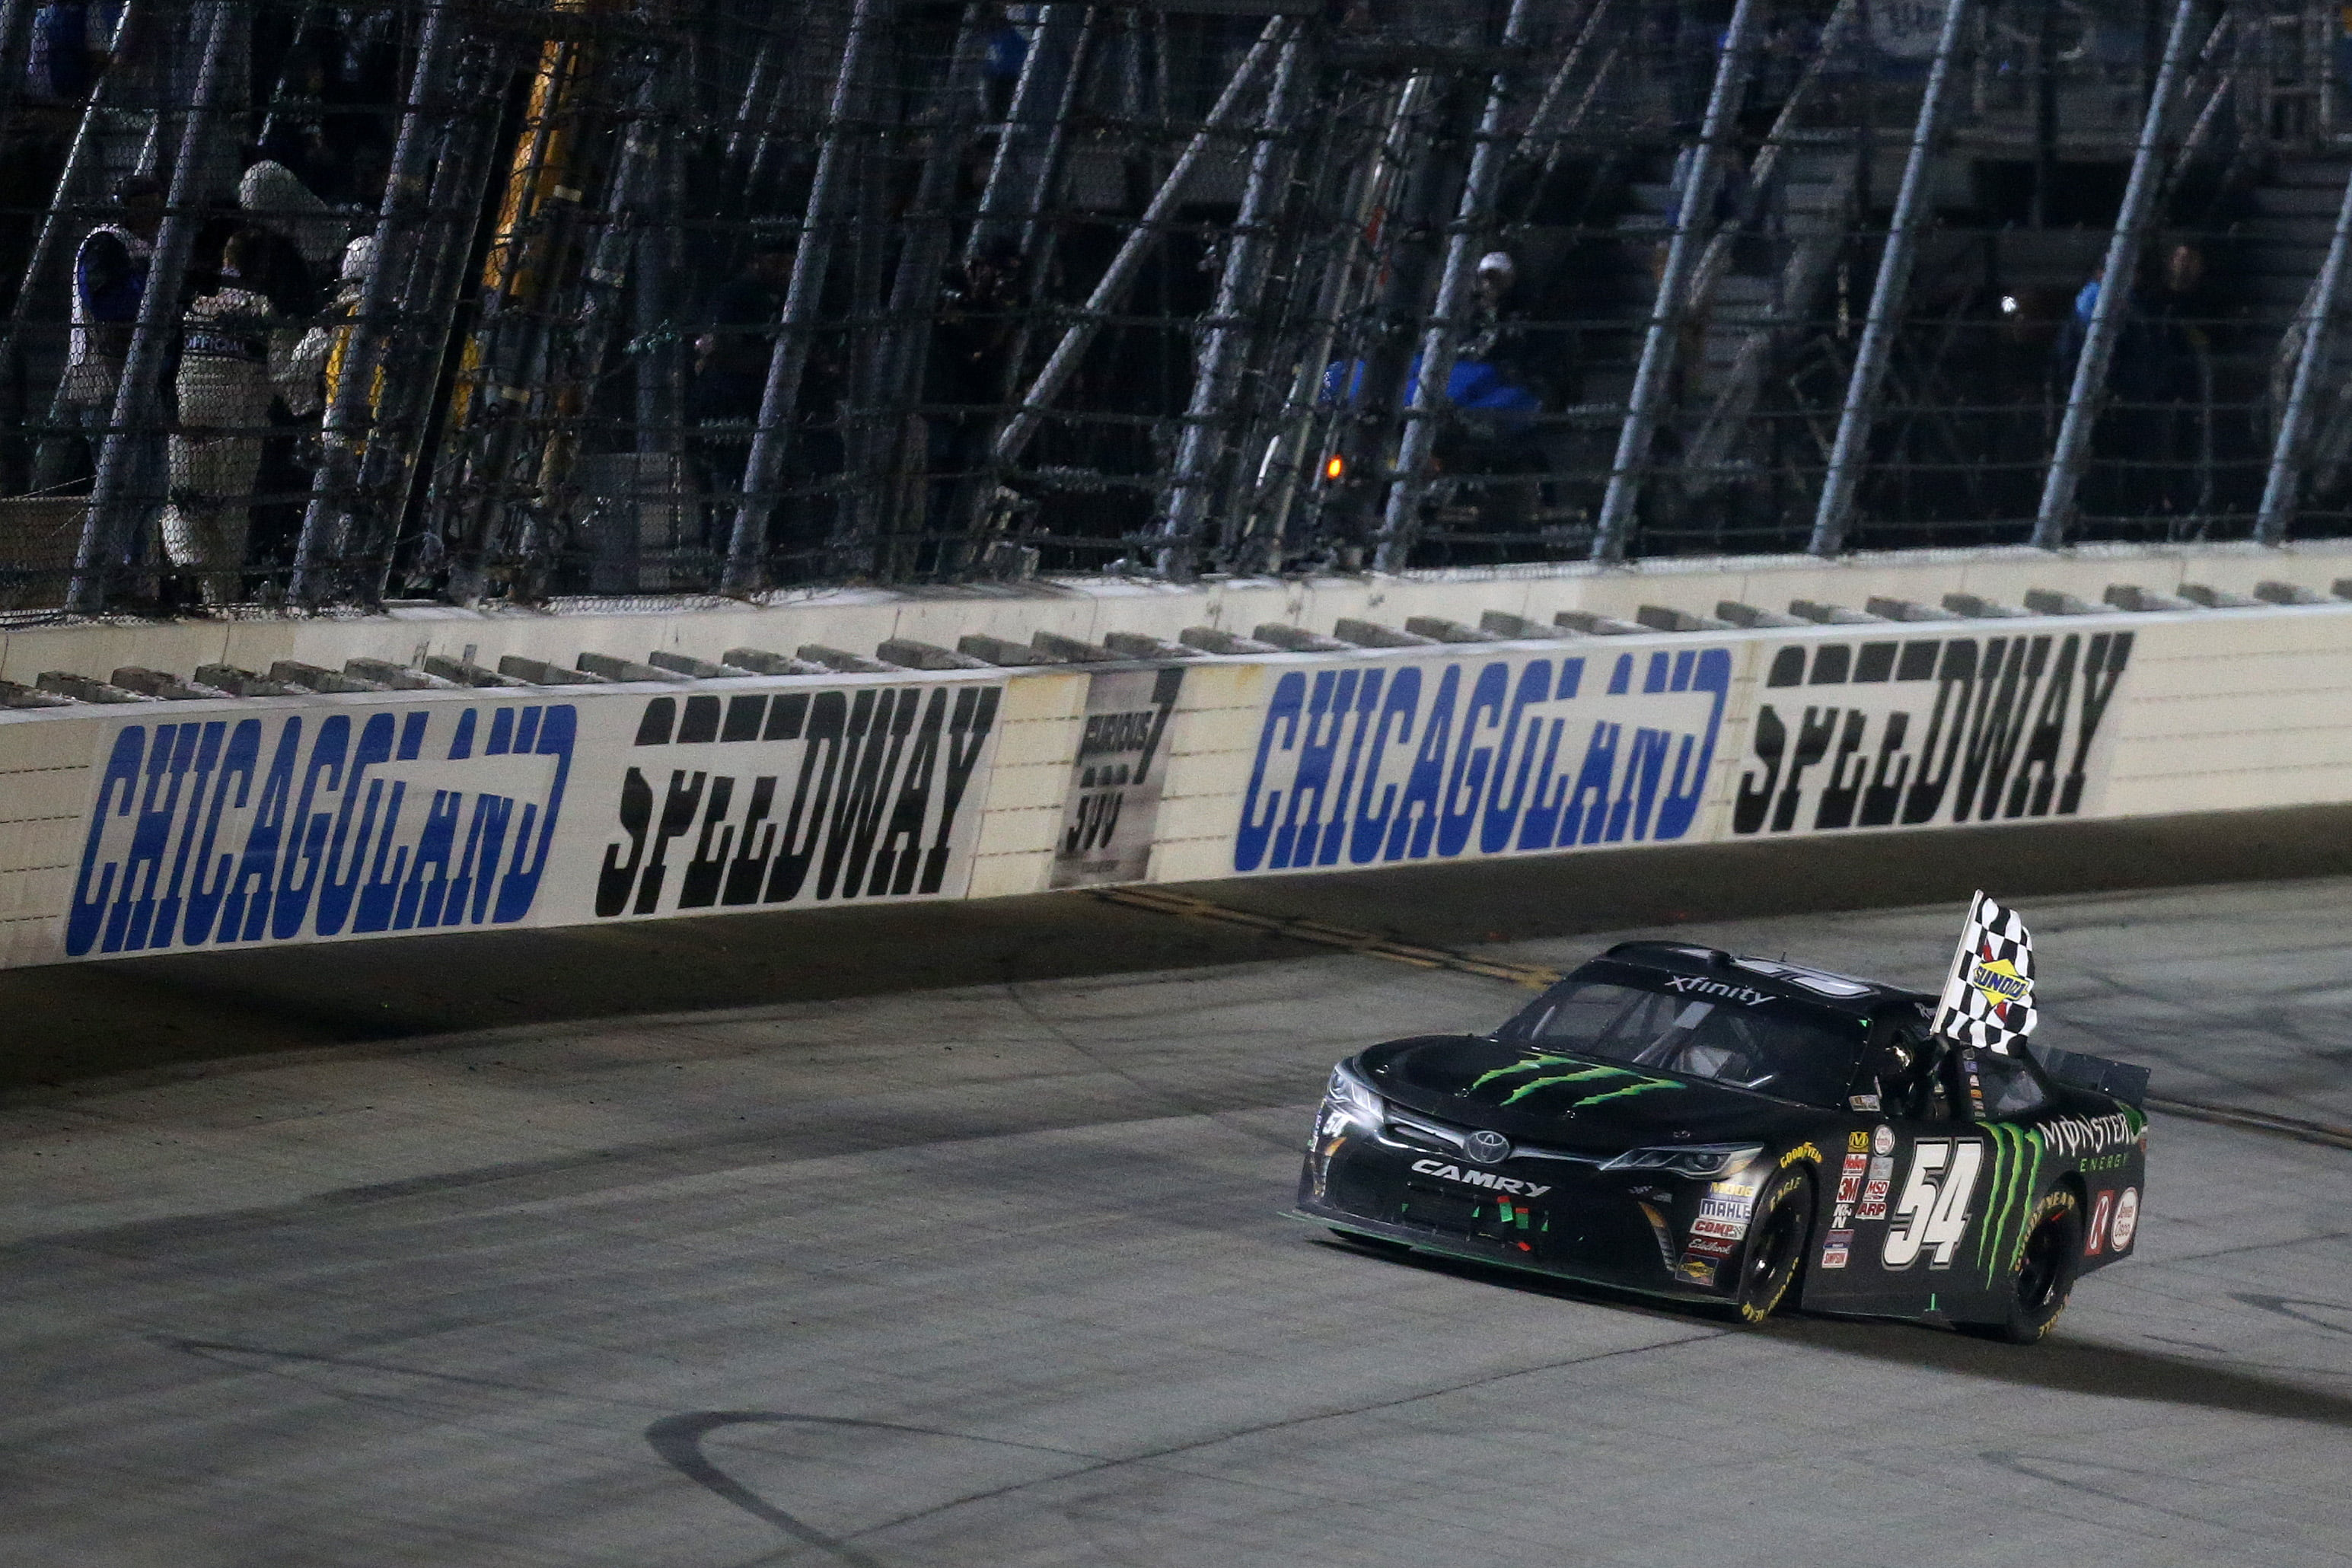 Kyle Busch outruns teammate Matt Kenseth for Chicagoland XFINITY win